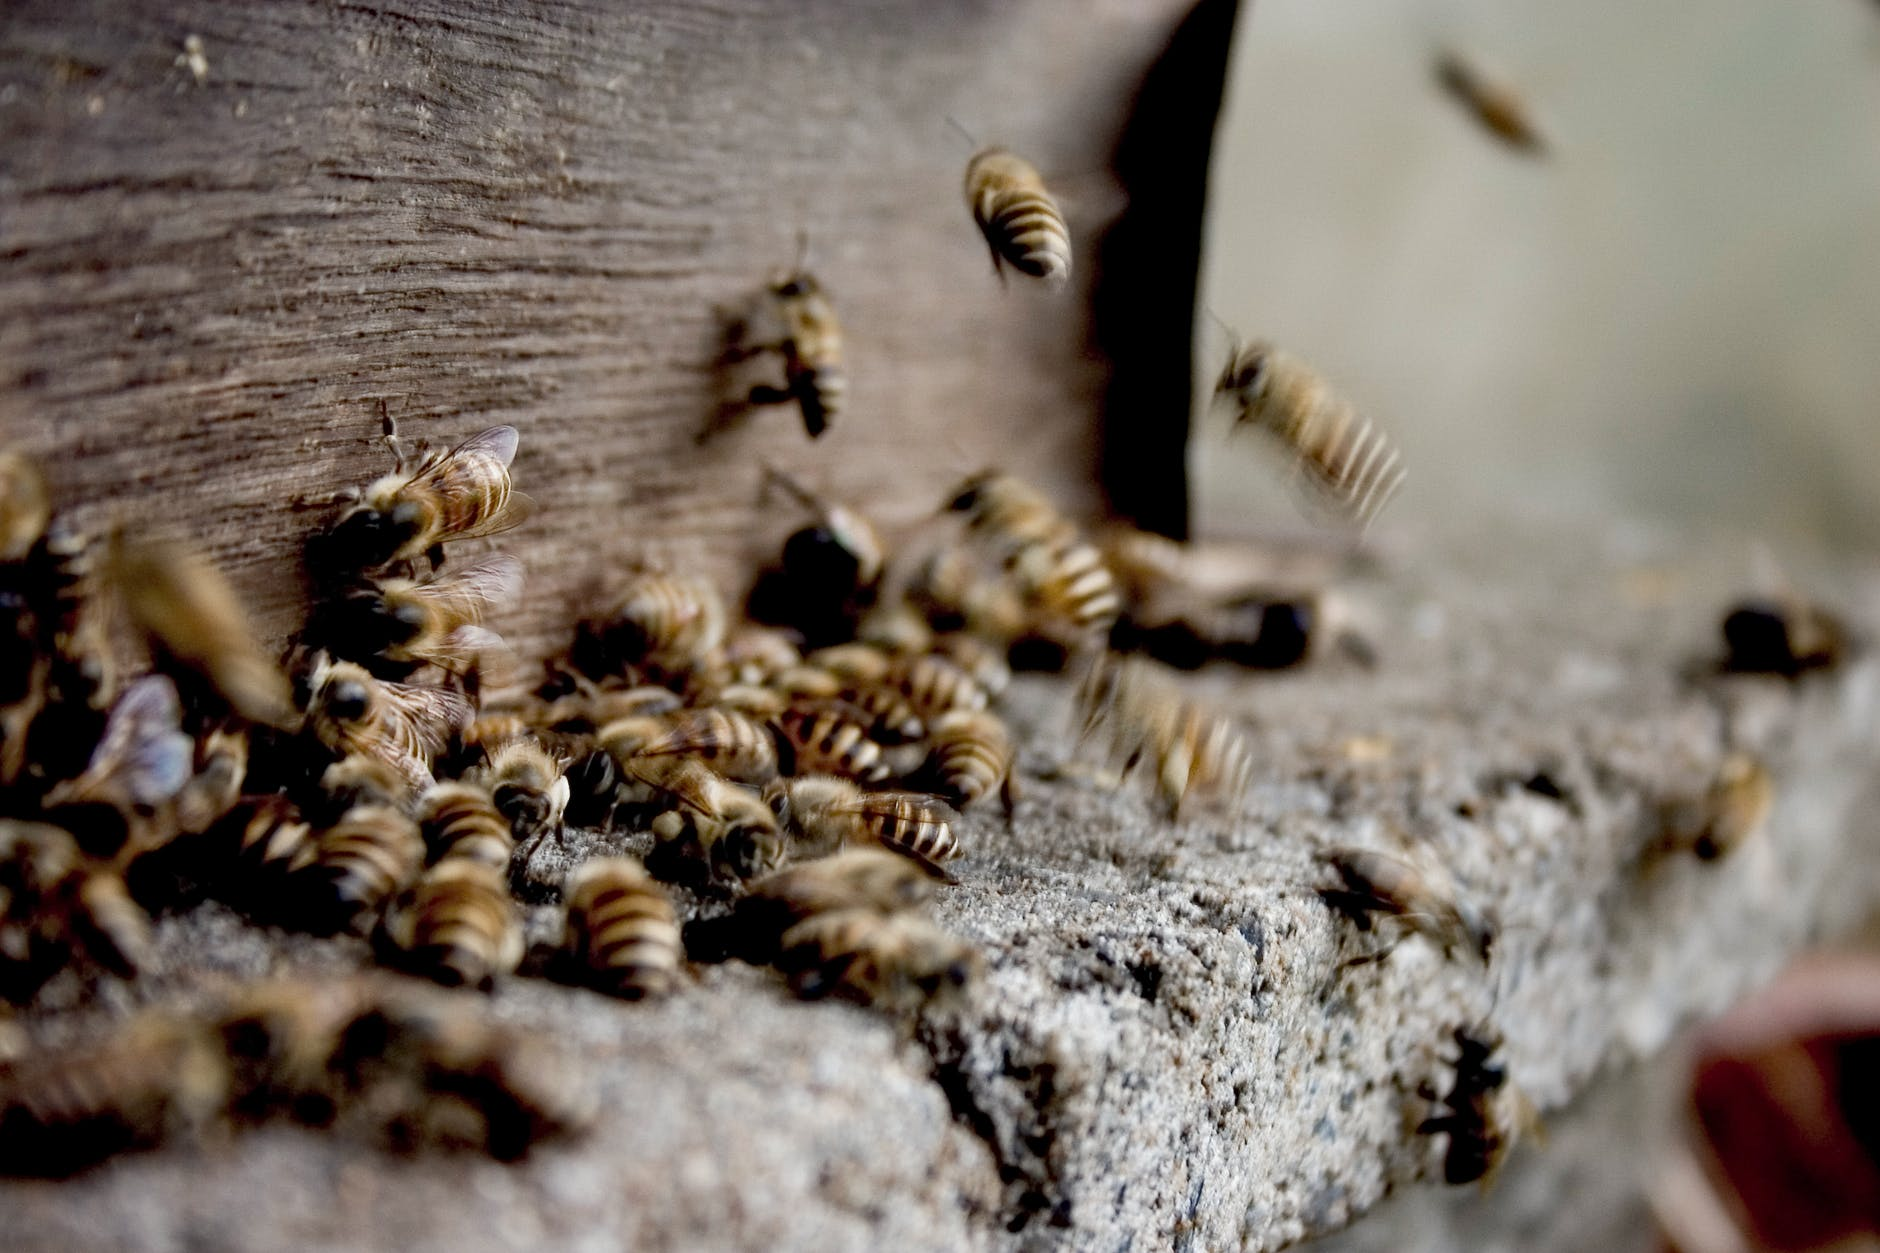 swarm of bees making honey in hive